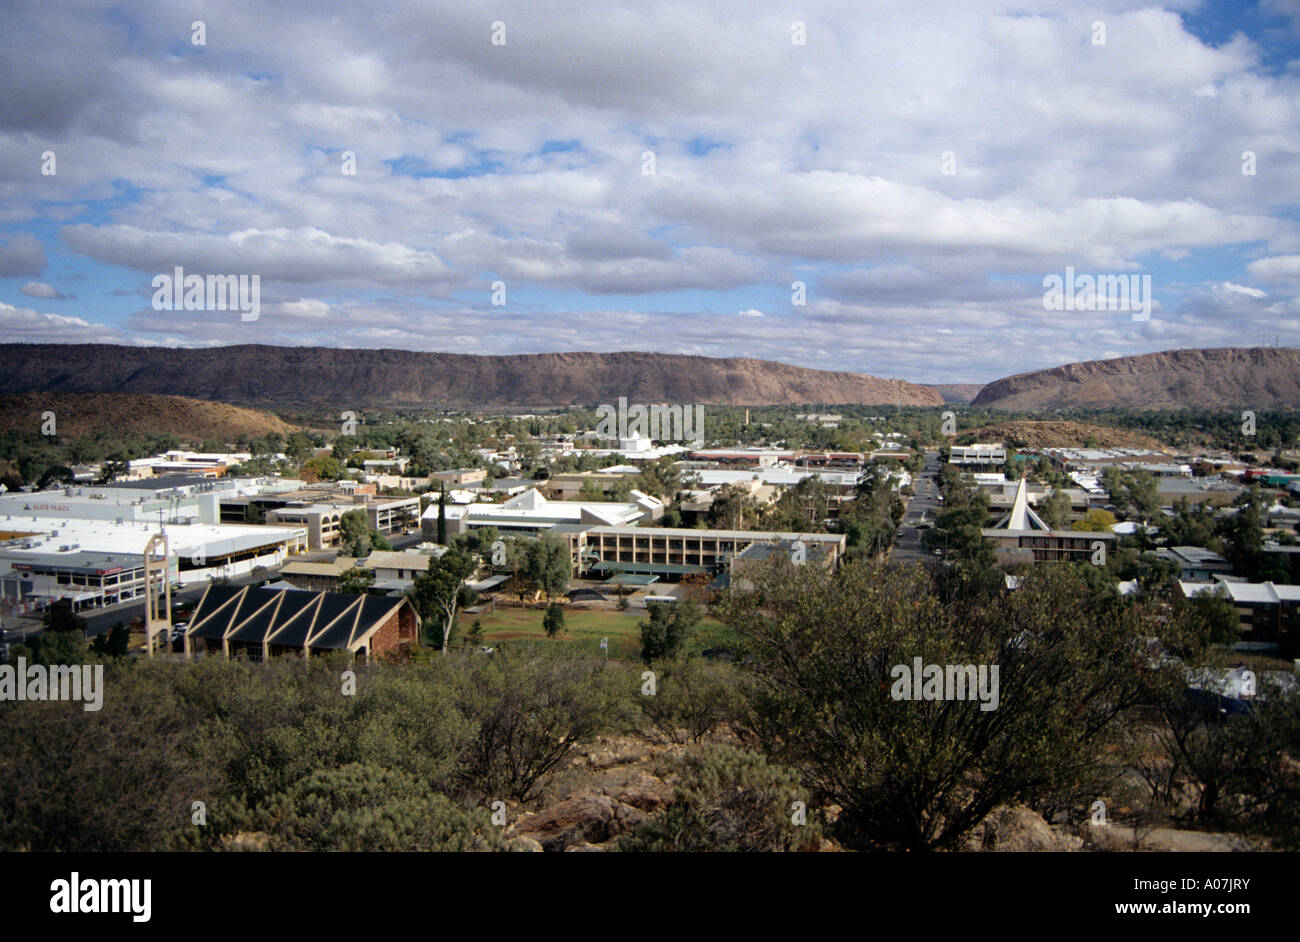 View of Alice Springs from ANZAC Hill, Alice Springs, Northern Territory, Australia. - Stock Image